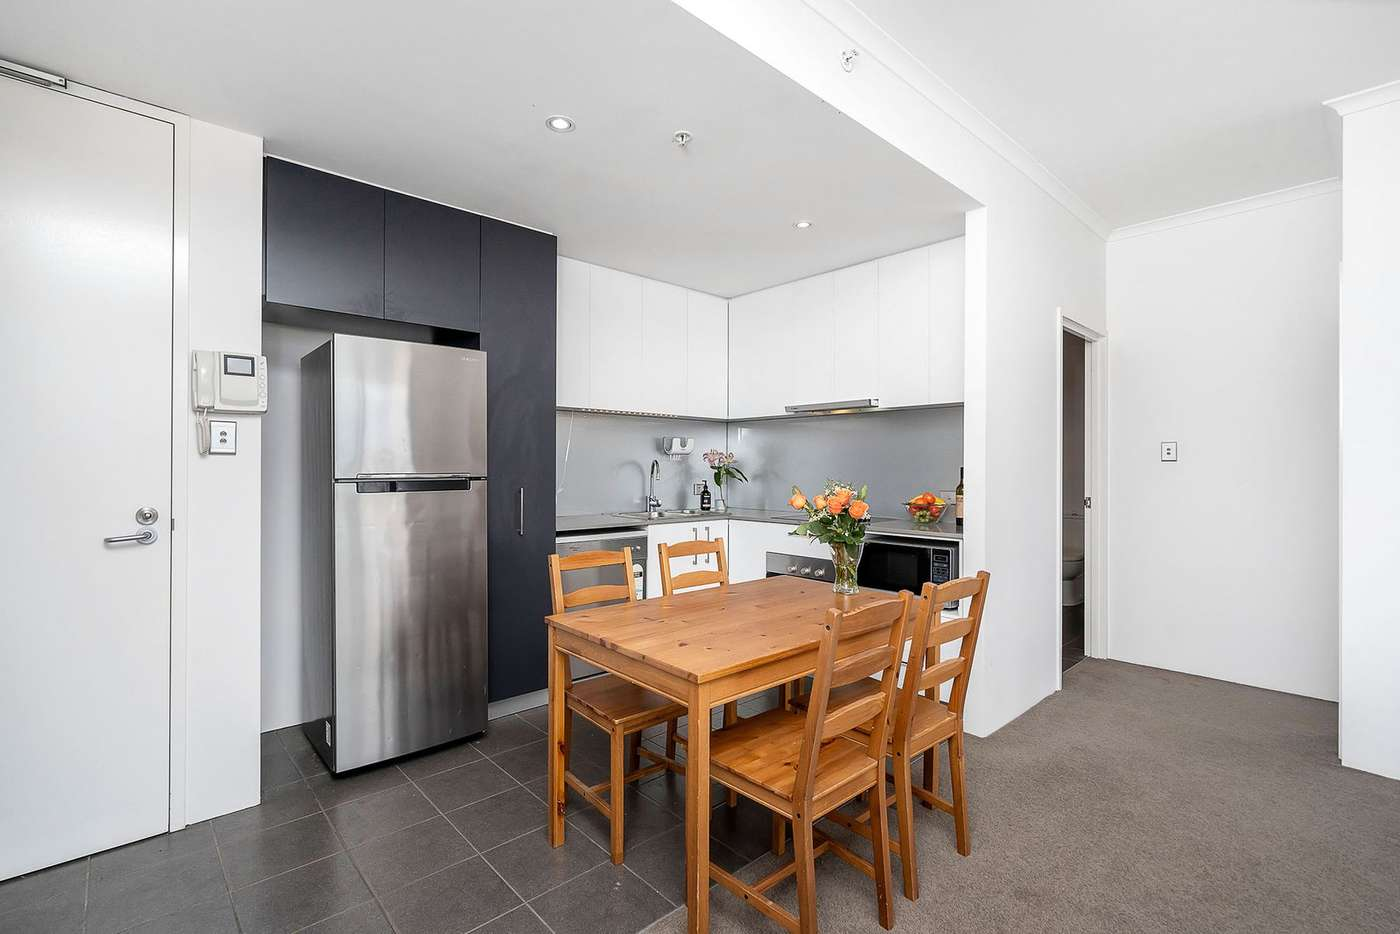 Fifth view of Homely apartment listing, 104/15 Aberdeen St, Perth WA 6000